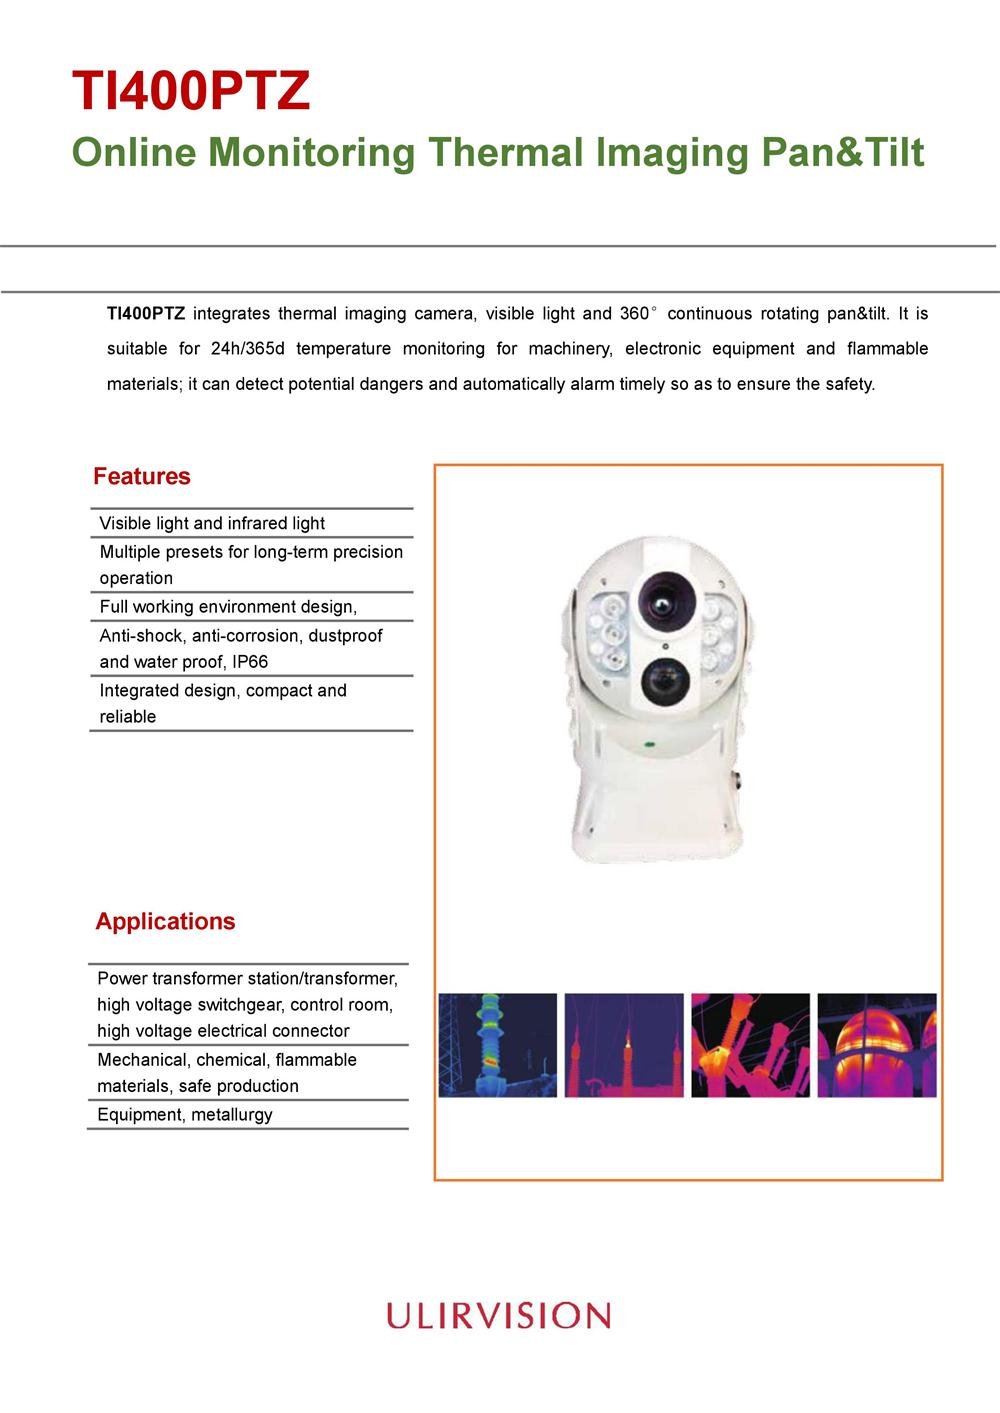 ULIRVISION Online Monitoring Thermal Imaging Pan&Tilt TI400PTZ High Quality